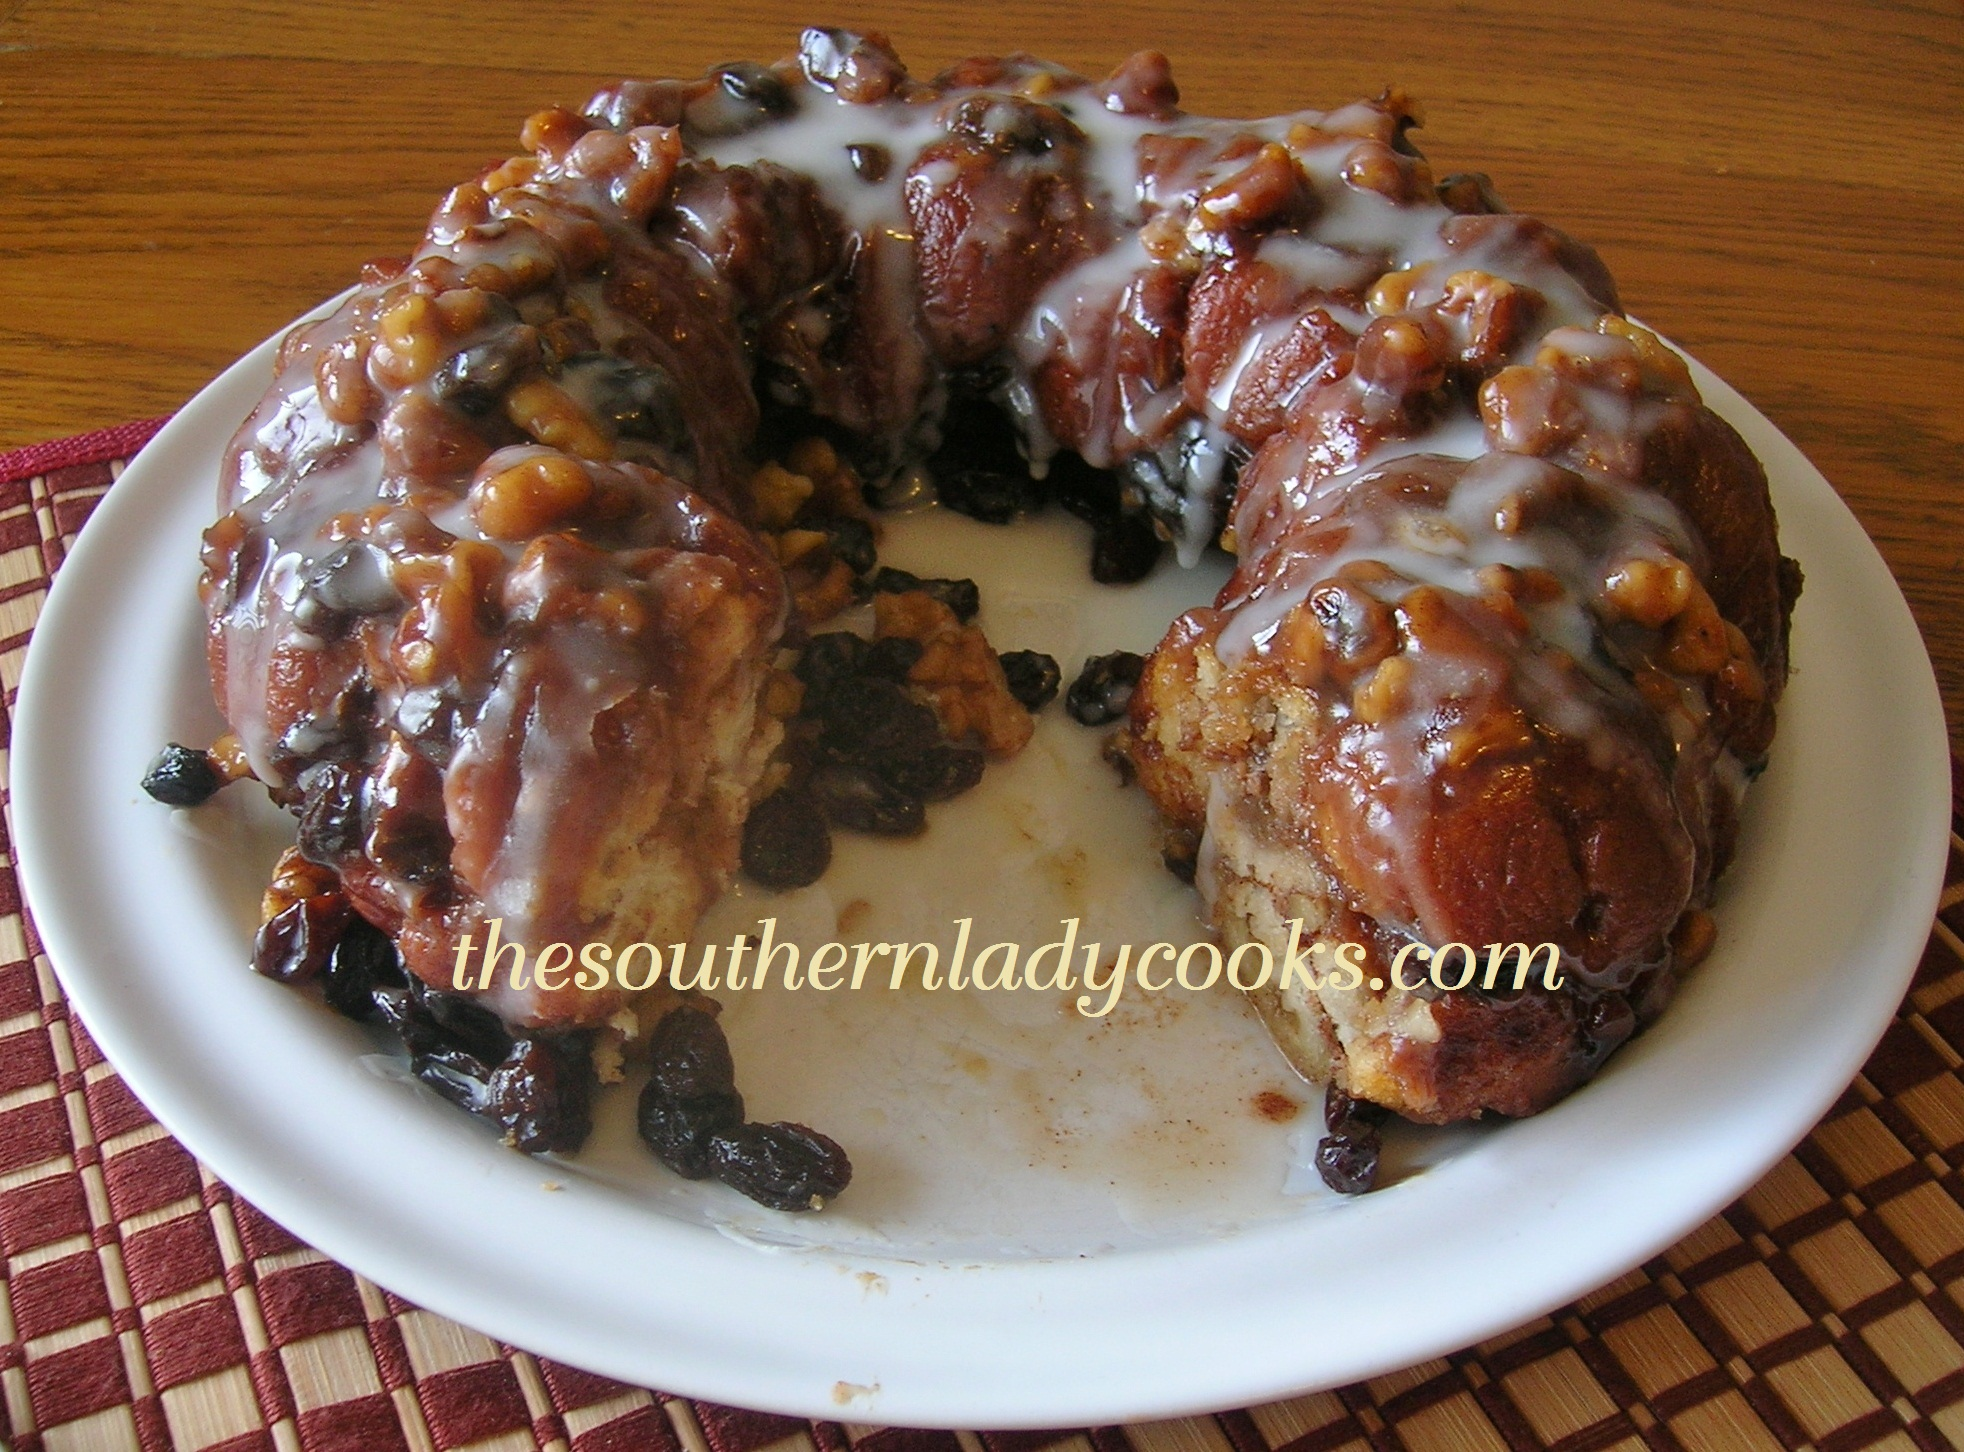 APPLE CINNAMON MONKEY BREAD | The Southern Lady Cooks